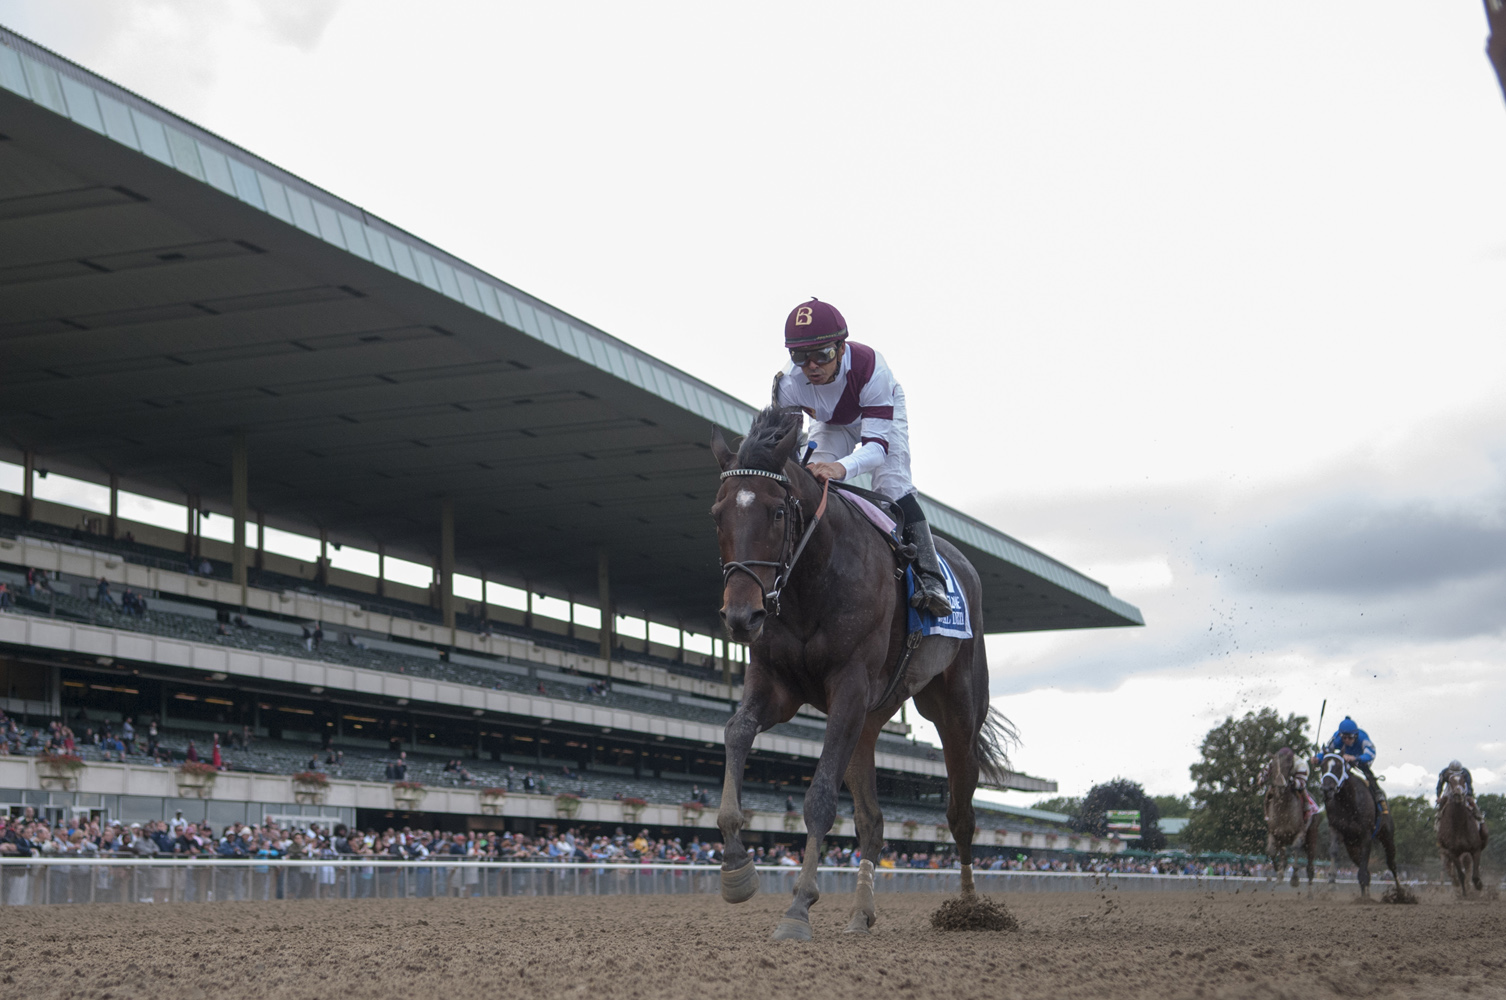 Royal Delta (Mike Smith up) digging in to win the 2012 Beldame Invitational at Belmont Park by nine-and-a-half lengths (NYRA)